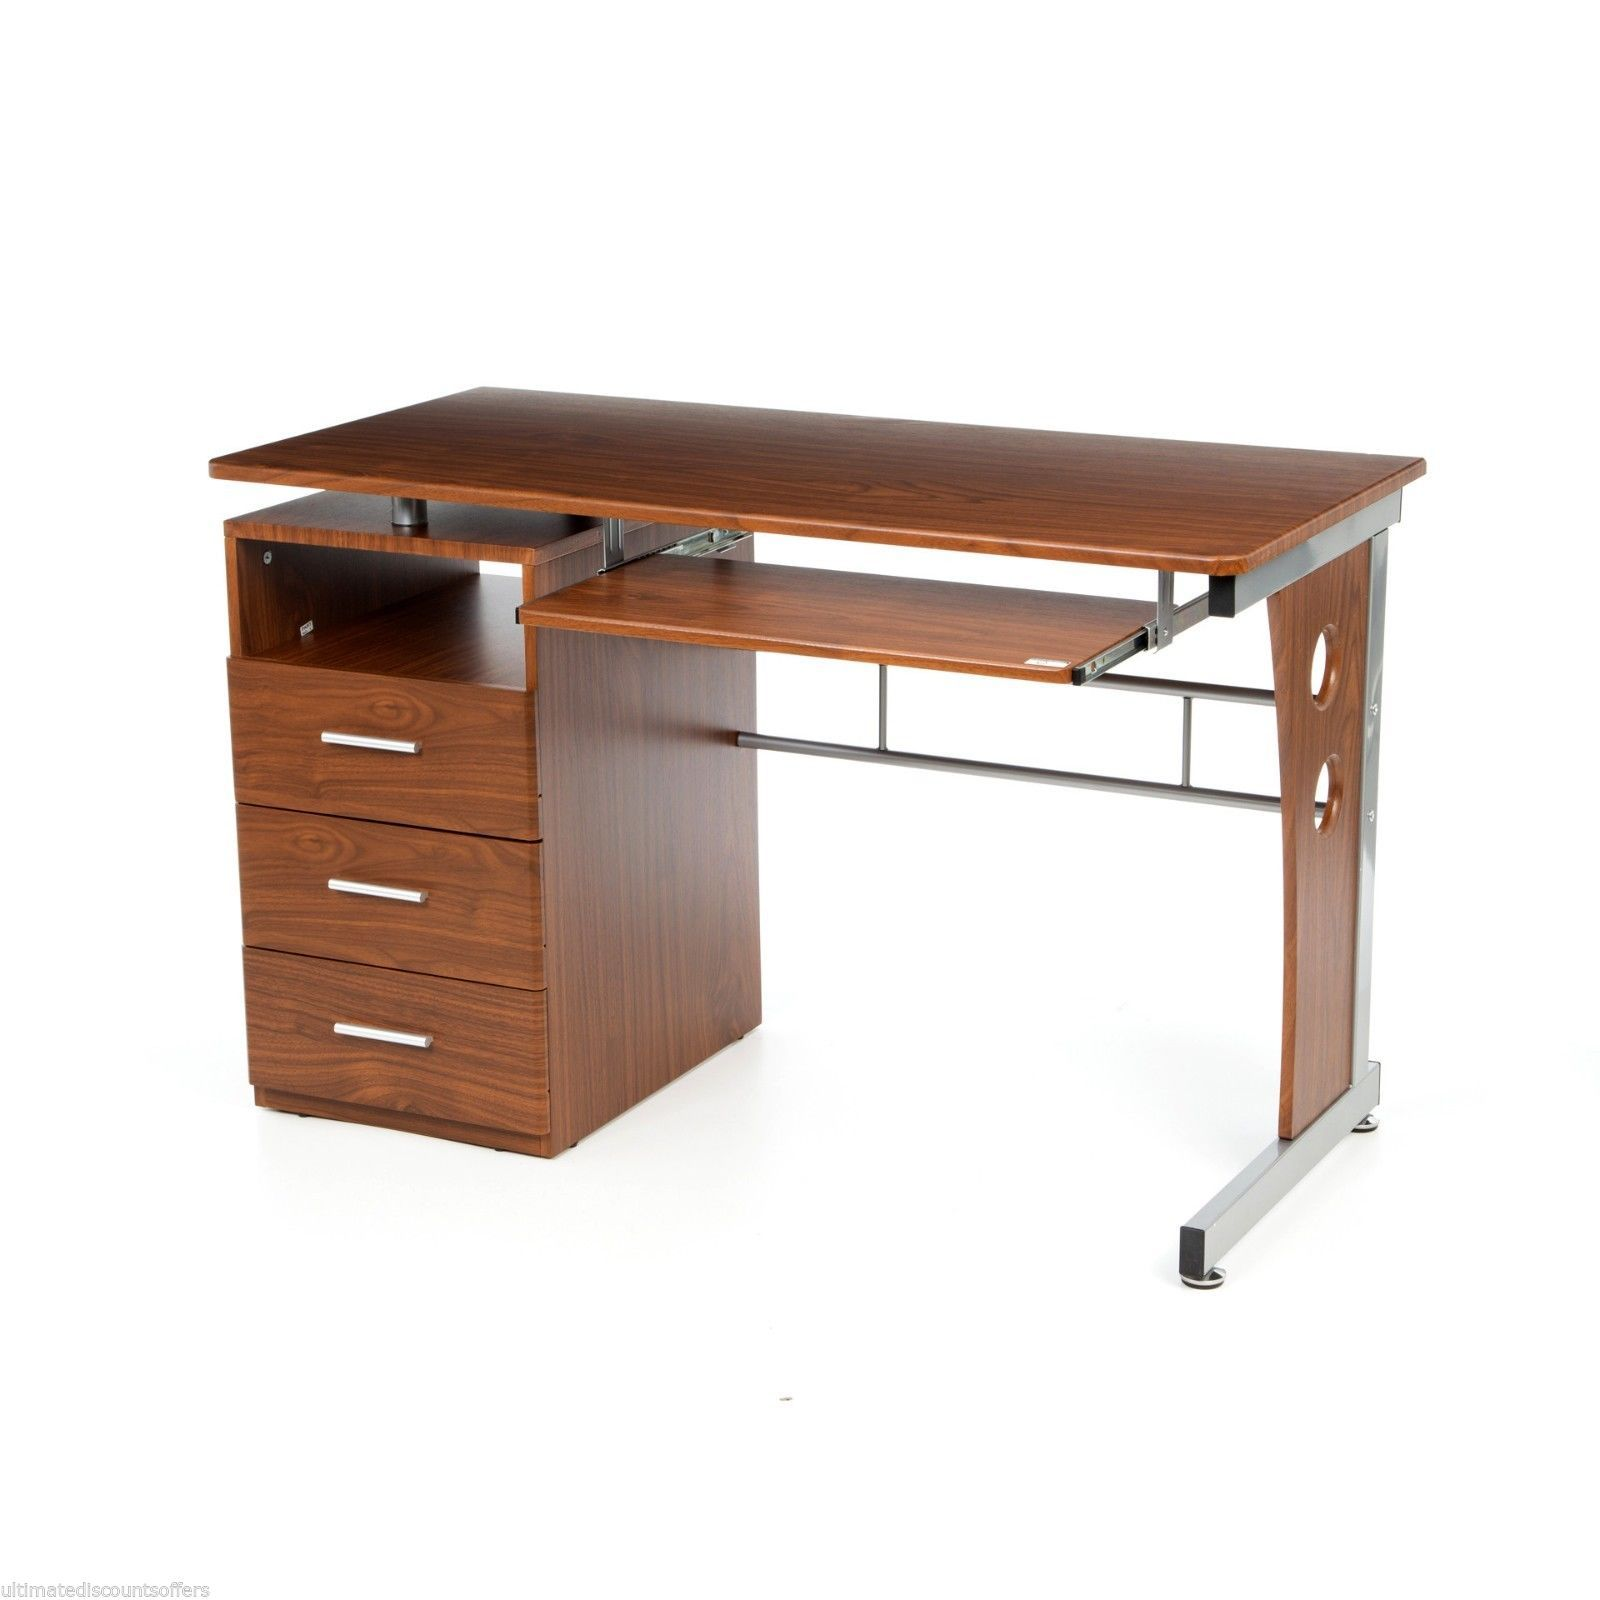 Marvelous photograph of Office Furniture Computer Desk Home Business Computer Modern Wood Side  with #AD5119 color and 1600x1600 pixels